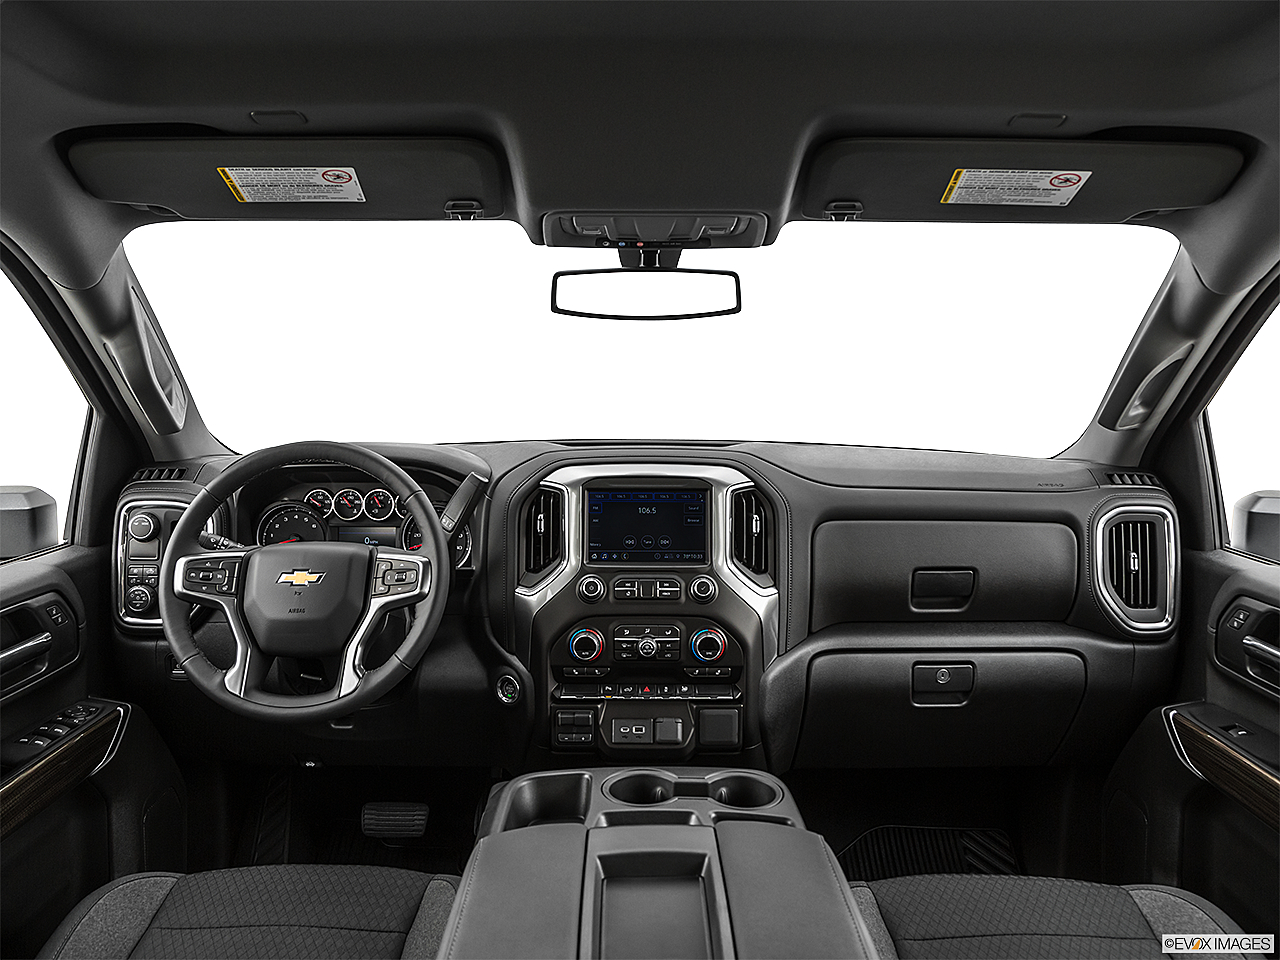 2020 Chevrolet Silverado 2500HD LT, centered wide dash shot